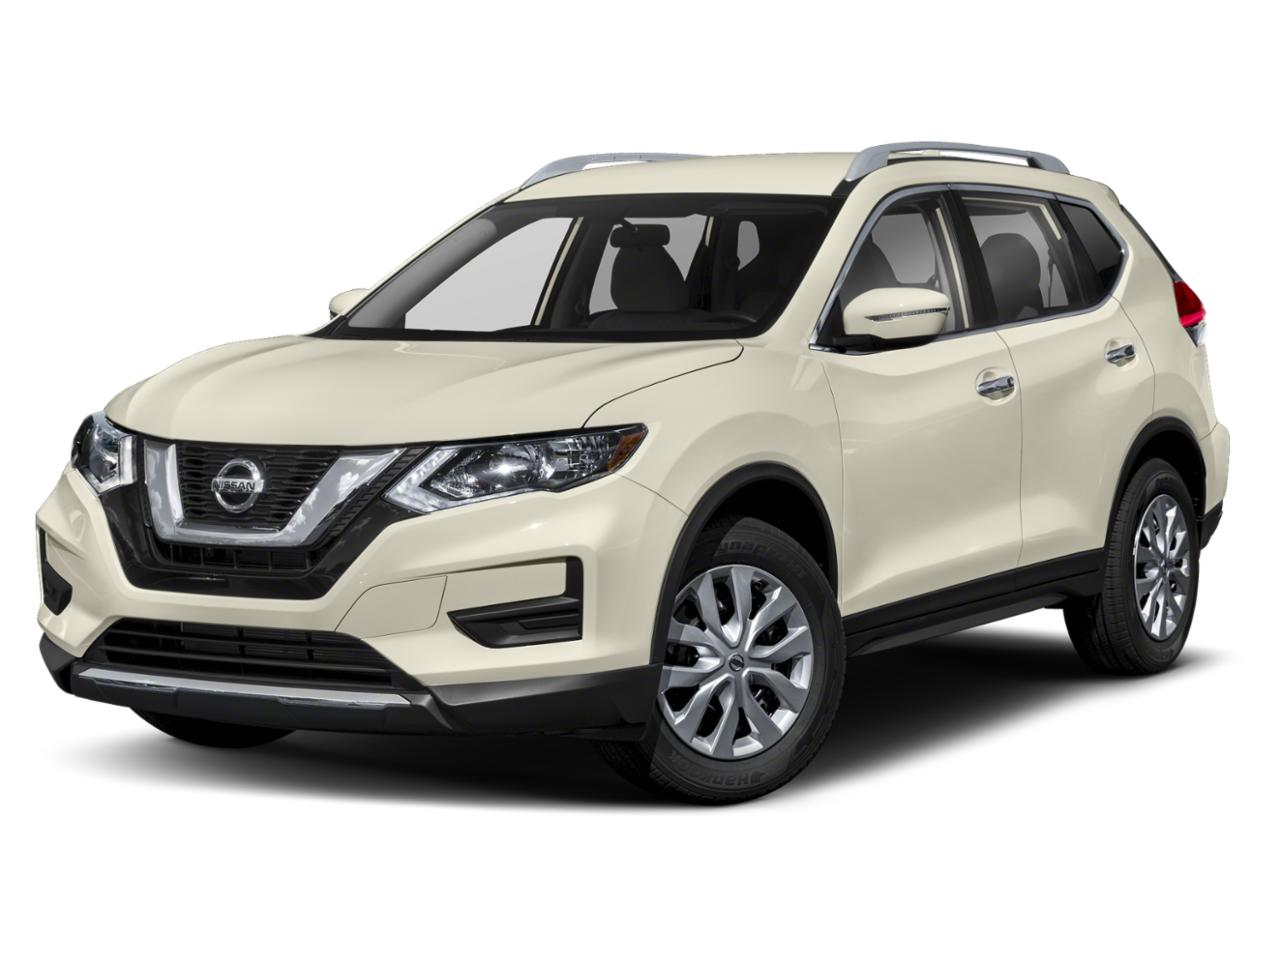 2018 Nissan Rogue Vehicle Photo in Muncy, PA 17756